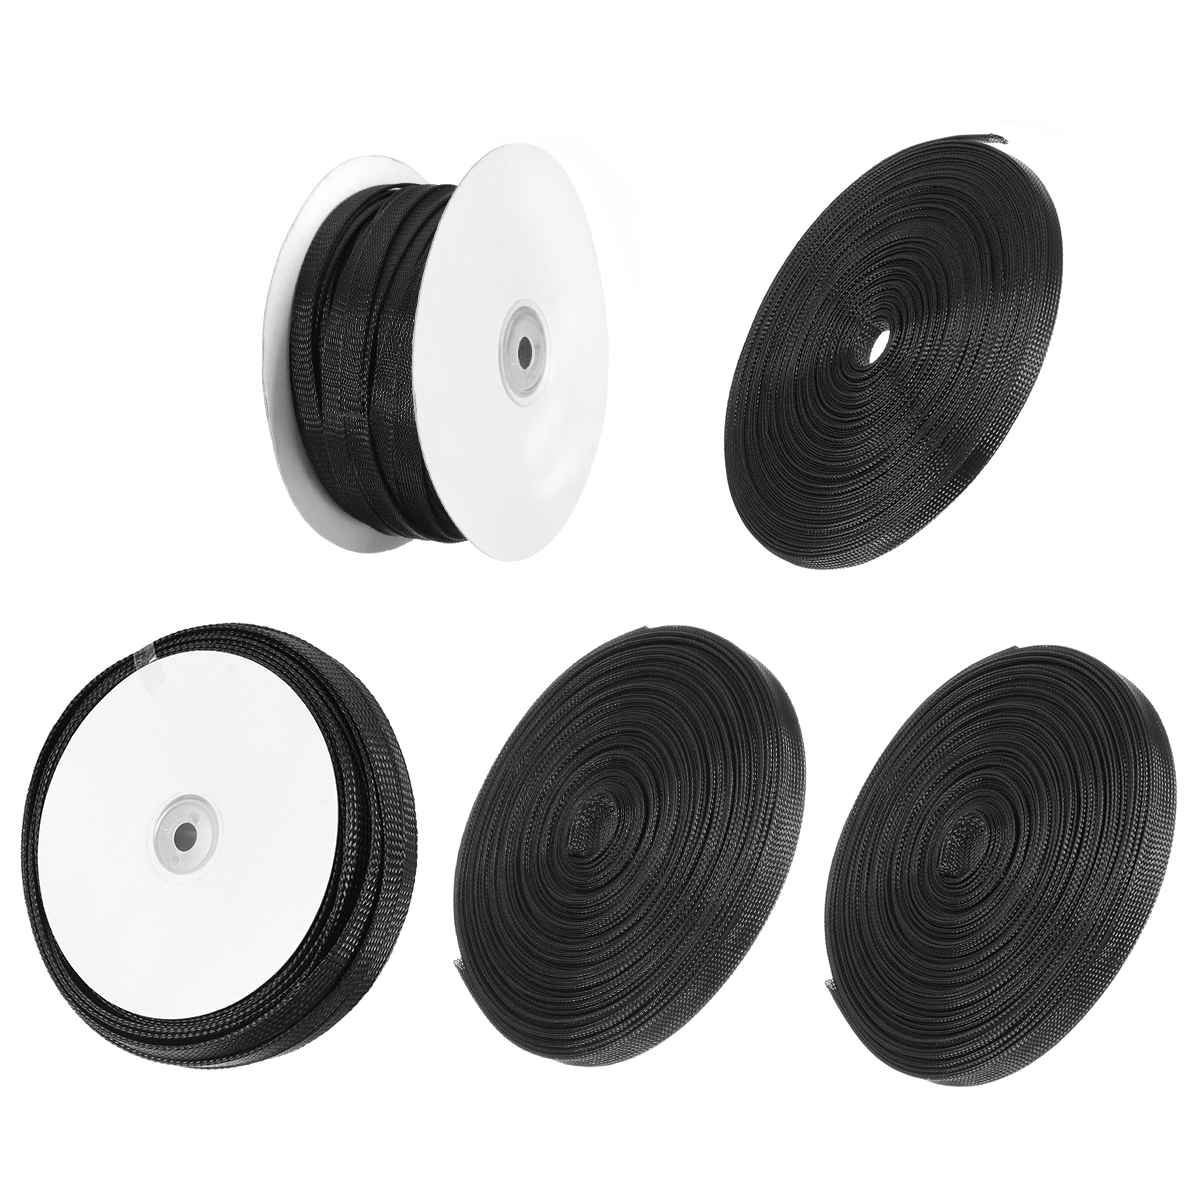 30m Nylon Black Expandable Sheathing Tight Braided Loom Tubing Wire Cable Sleeving Insulation 8/10/12/15/20mm For Wrapping Cable trianglelab cable casing black spiral wrapping reprap flame retardant 10mm diameter cable sleeves winding pipe wrapping band